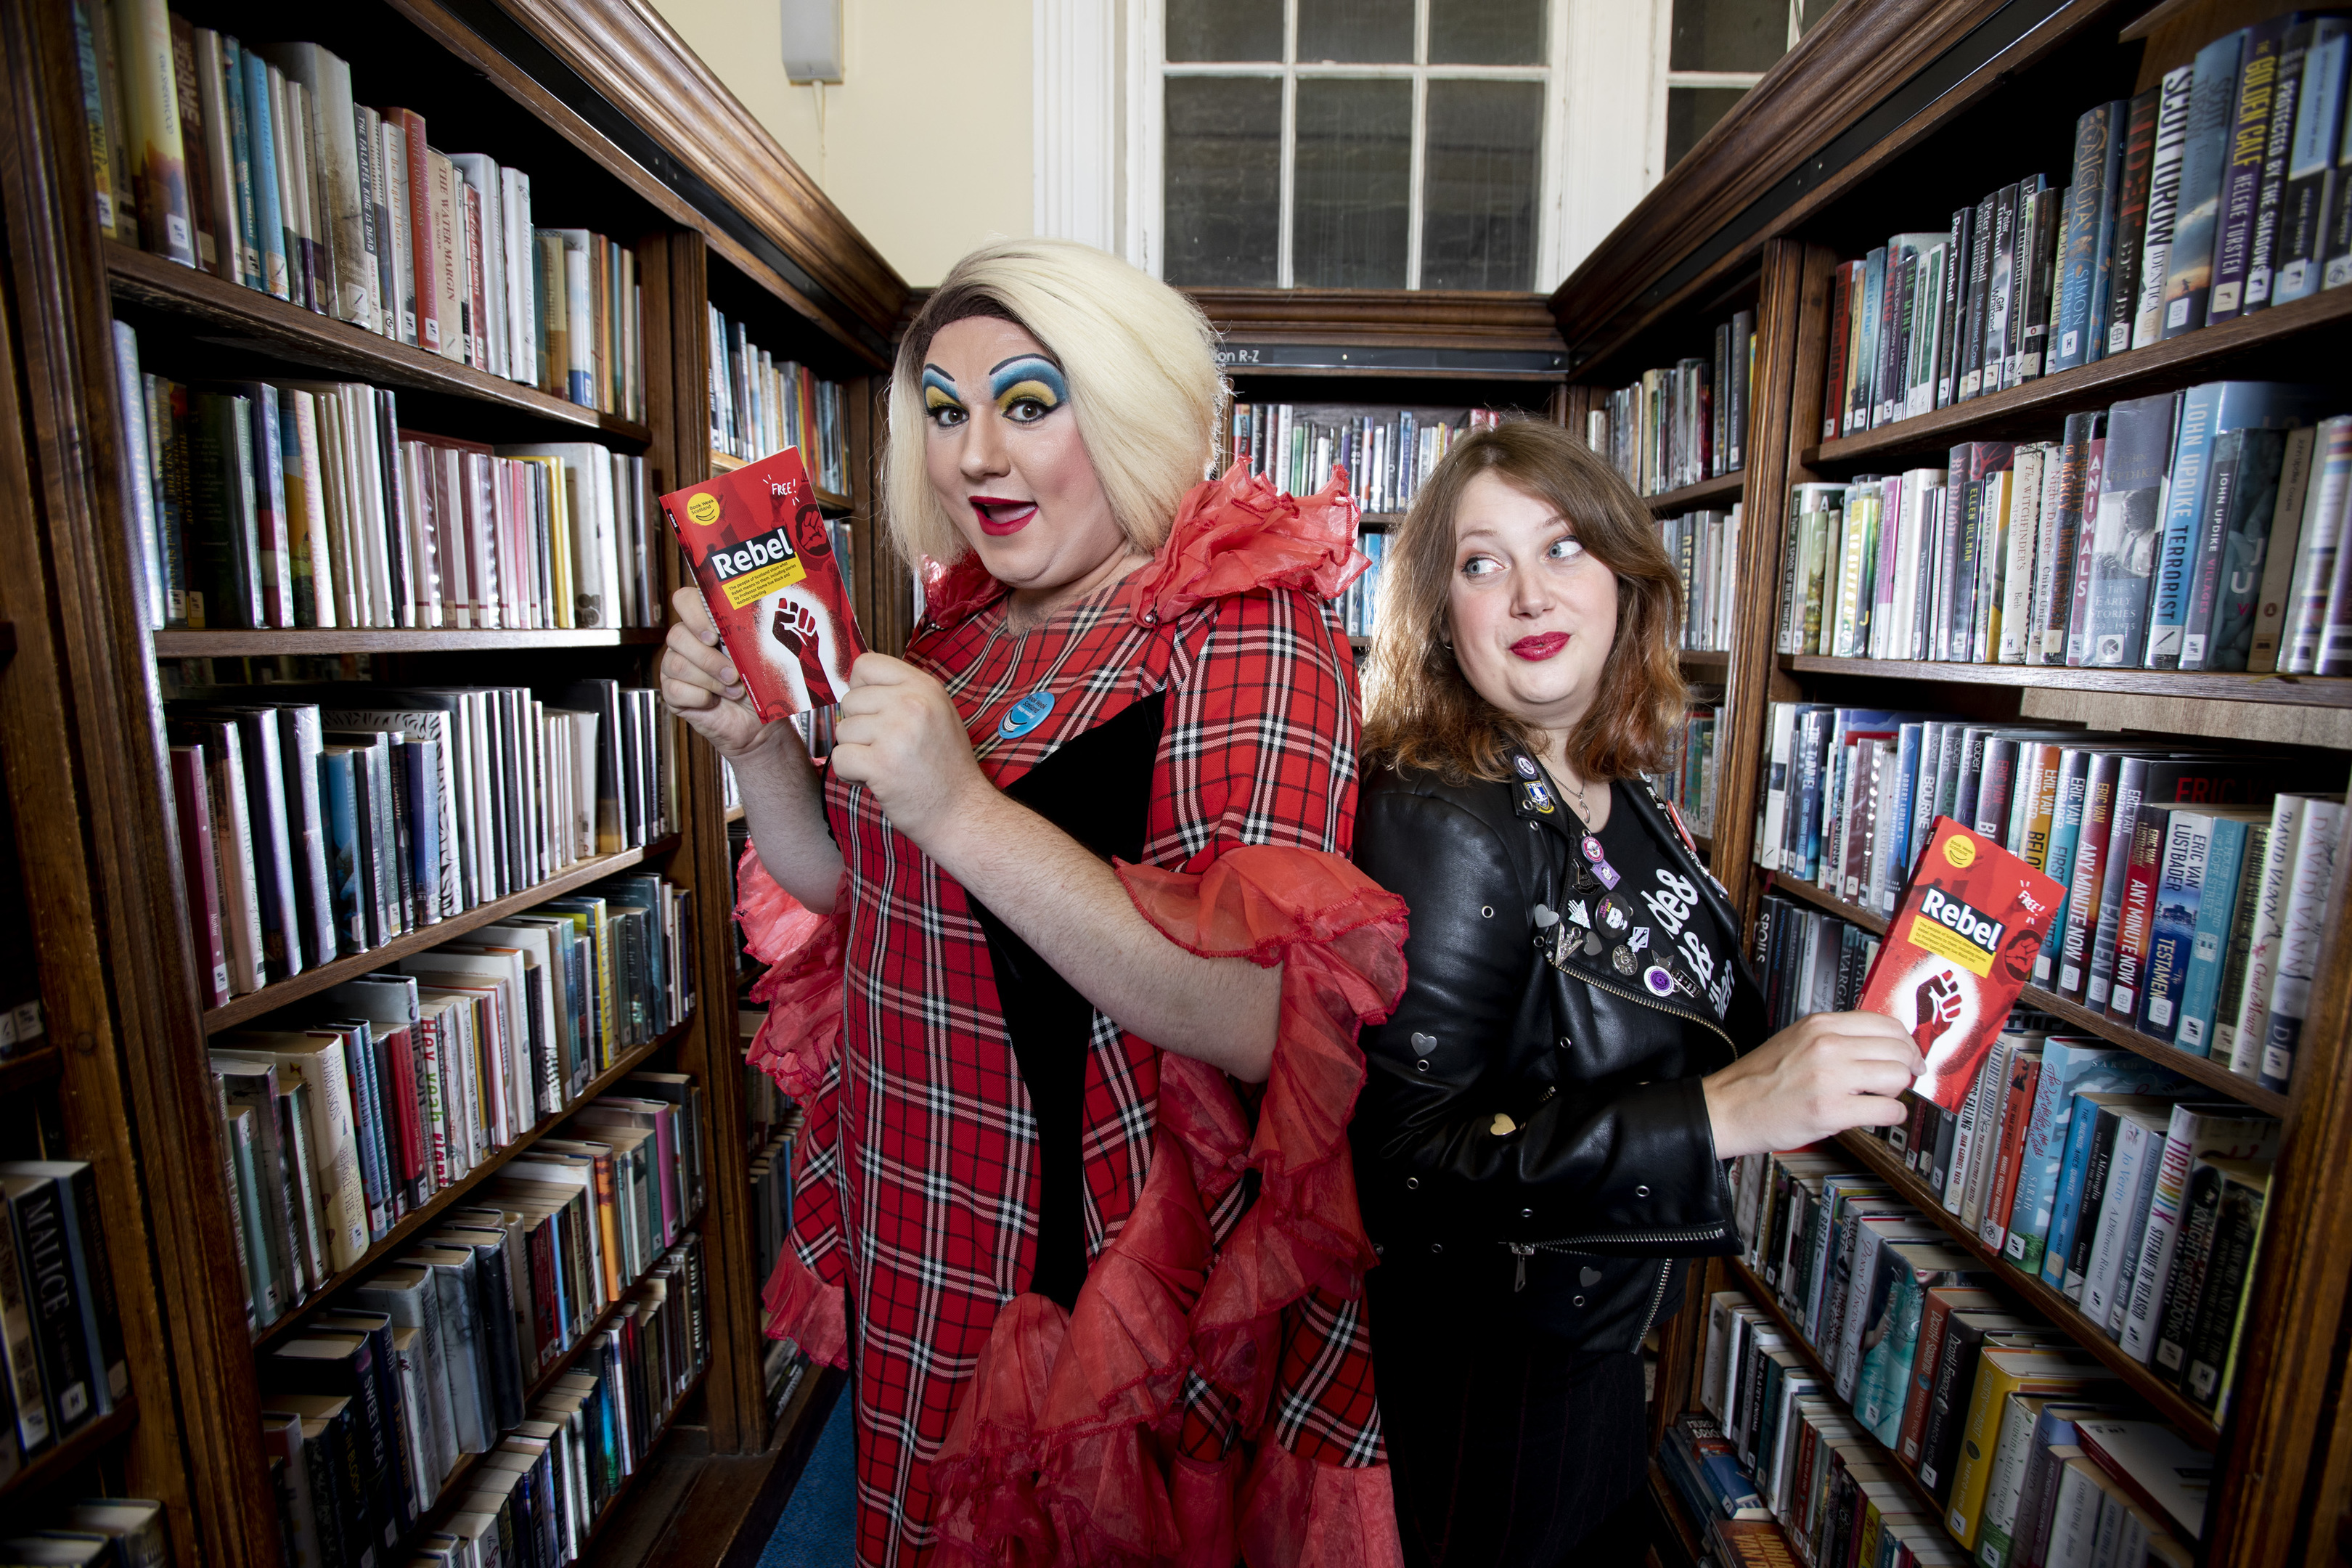 PROGRAMME LAUNCH OF BOOK WEEK SCOTLAND 2018 Book Week Scotland 2018 runs from 19 November to 25 November Pictured Drag Queen Nancy Clench with author Claire Askew holding  the Book Week Scotland Rebel Book at The Edinburgh Central Library.  The programme for Scotland's seventh national celebration of books and reading was launched today, Wednesday 3 October, with a photocall of rebellious librarians held at Central Library, Edinburgh. Drag queen and Book Week Scotland ambassador, Nancy Clench, and bestselling author Claire Askew posed with copies of the Rebel book, which features a story from herself, as well as others submitted from the public. Working with a wide range of partners, Scottish Book Trust – the national charity changing lives through reading and writing – will deliver events and activities across the country during Book Week Scotland 2018, which runs from 19 November to 25 November, linked to this year's theme of Rebel. There are hundreds of free events taking place across many different local authorities, funded by Scottish Library and Information Council (SLIC). Authors holding events include: bestselling YA writer and activist Juno Dawson; crime writer Ann Cleeves and outdoors expert and broadcaster Cameron McNeish. Rebel Book Free copies of the Rebel book can be ordered via Scottish Book Trust's website. 100,000 copies have been printed and the book will also be available from libraries across Scotland during Book Week. The book contains 40 stories, including work from: bestselling author Sara Sheridan; playwright and performer Jo Clifford; Book Week Scotland ambassador and forensic anthropologist Professor Dame Sue Black, and Gaelic writer David Eyre. An ebook and audiobook version of Rebel will also be downloadable from Scottish Book Trust's website. Scottish Book Trust has once again partnered with Royal National Institute    Photograph by Martin Shields  Tel 07572 457000 www.martinshields.com © Martin Shields